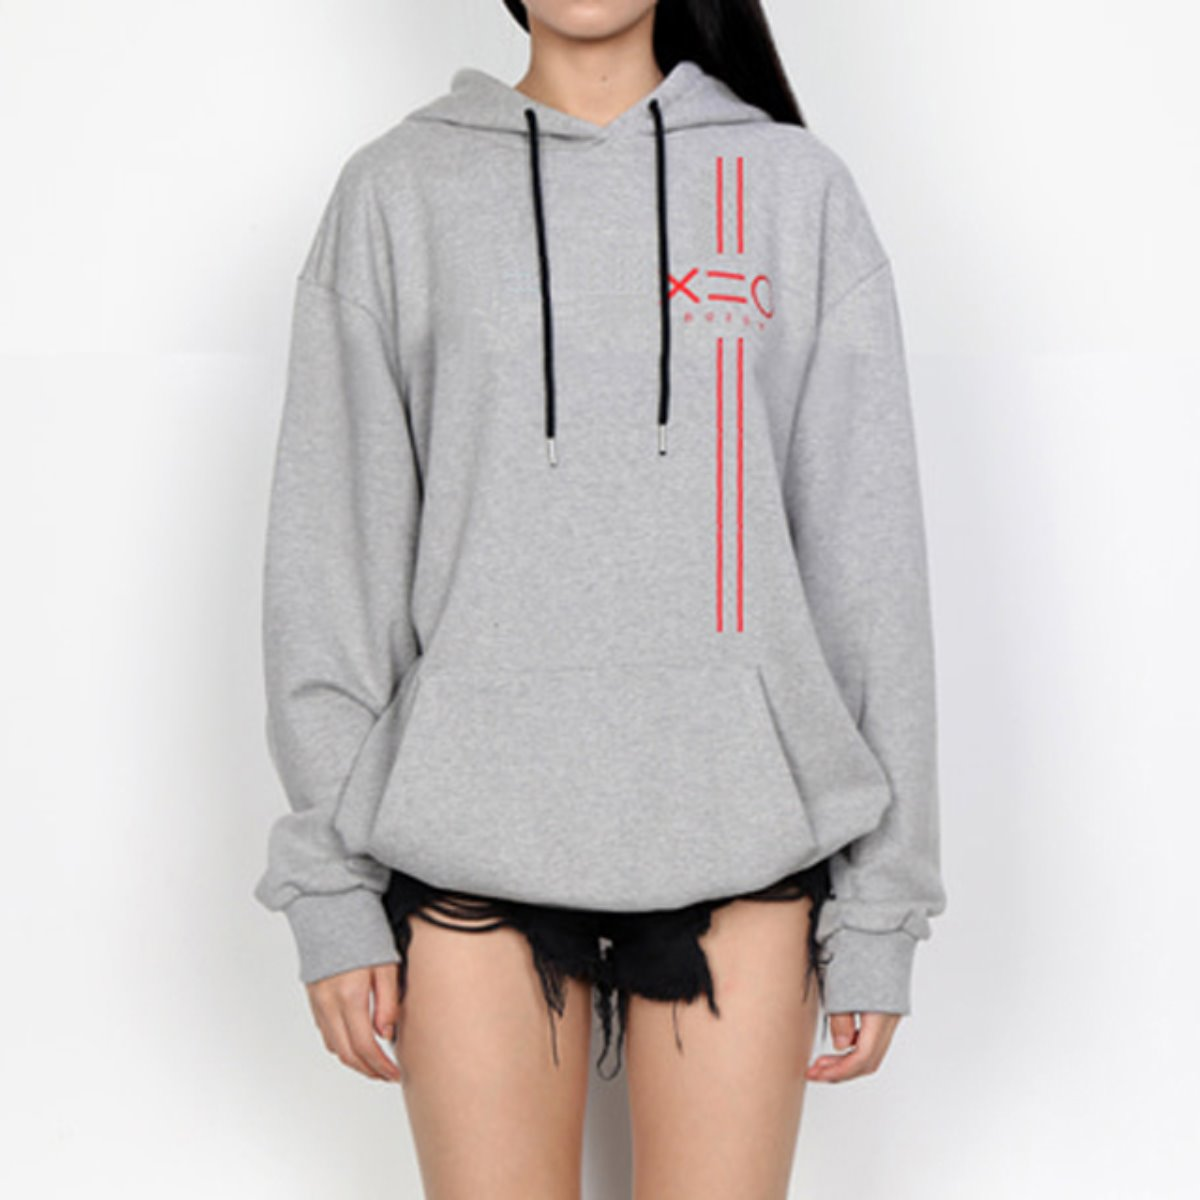 RED EQUAL V LINE & LOGO HOODIE SWEATSHIRTS(GREY)